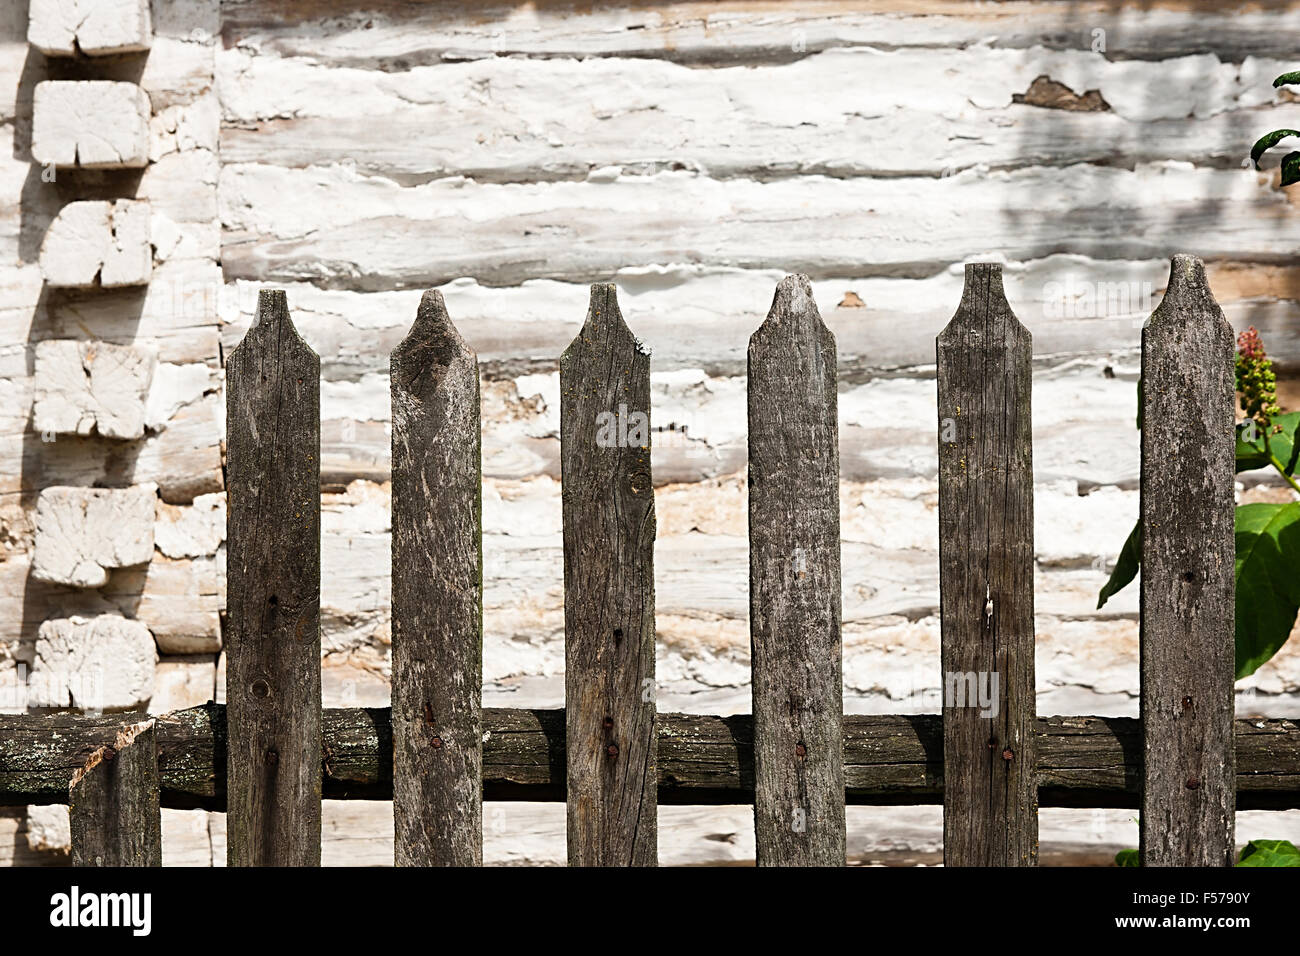 wood picket fence texture. Vintage Background Texture. Classic Old Wooden Fence With Wall On Background. Of Rural House From Logs Co Wood Picket Texture